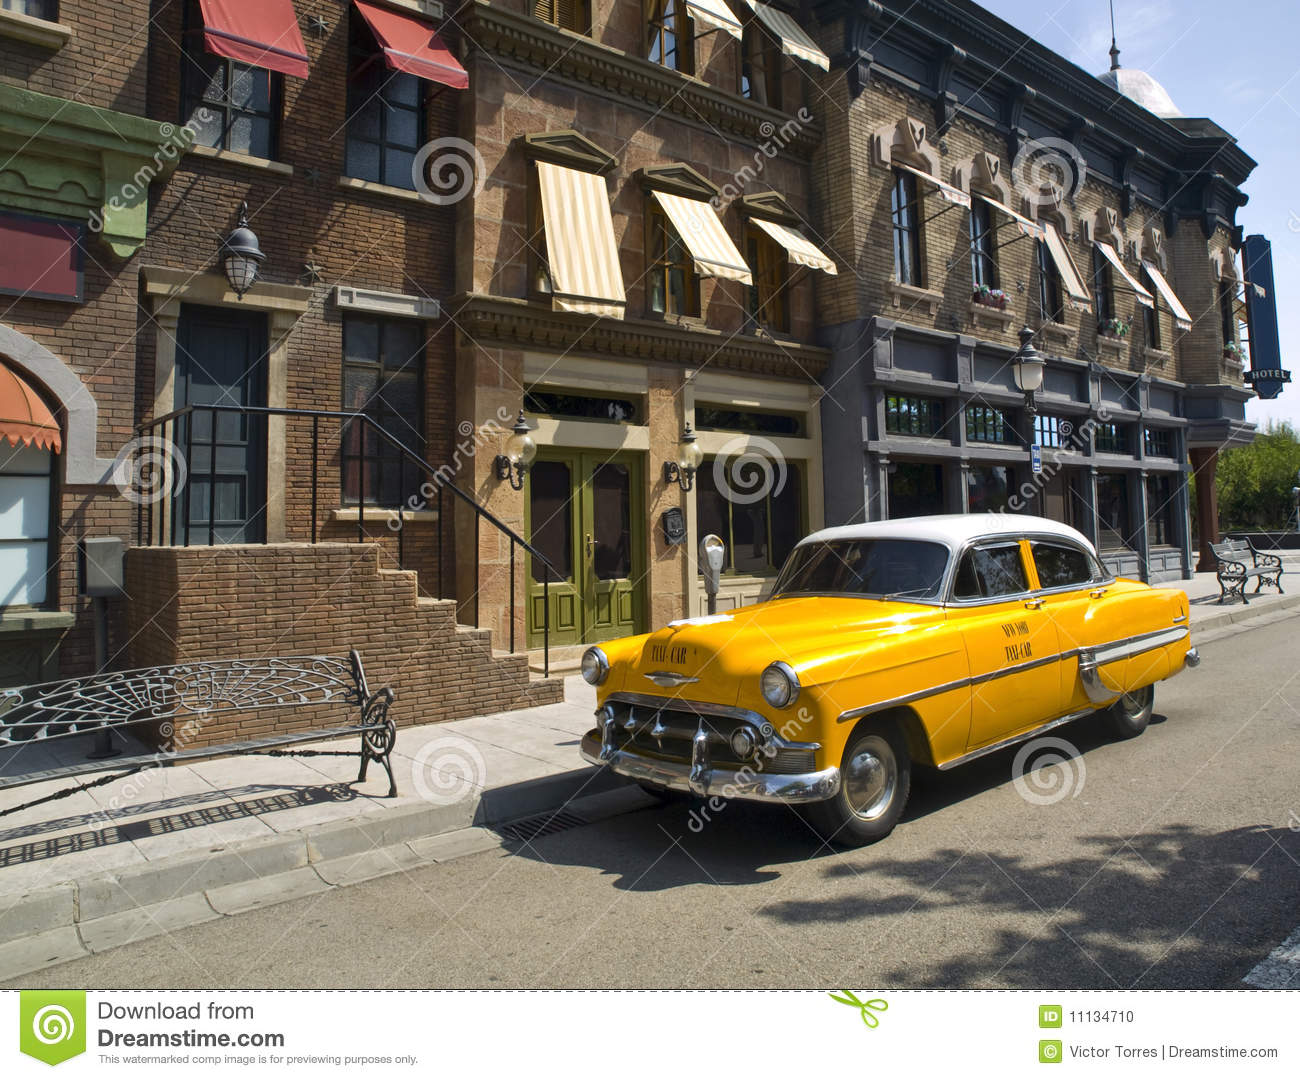 Oude Amerikaanse Taxi in een oude stad